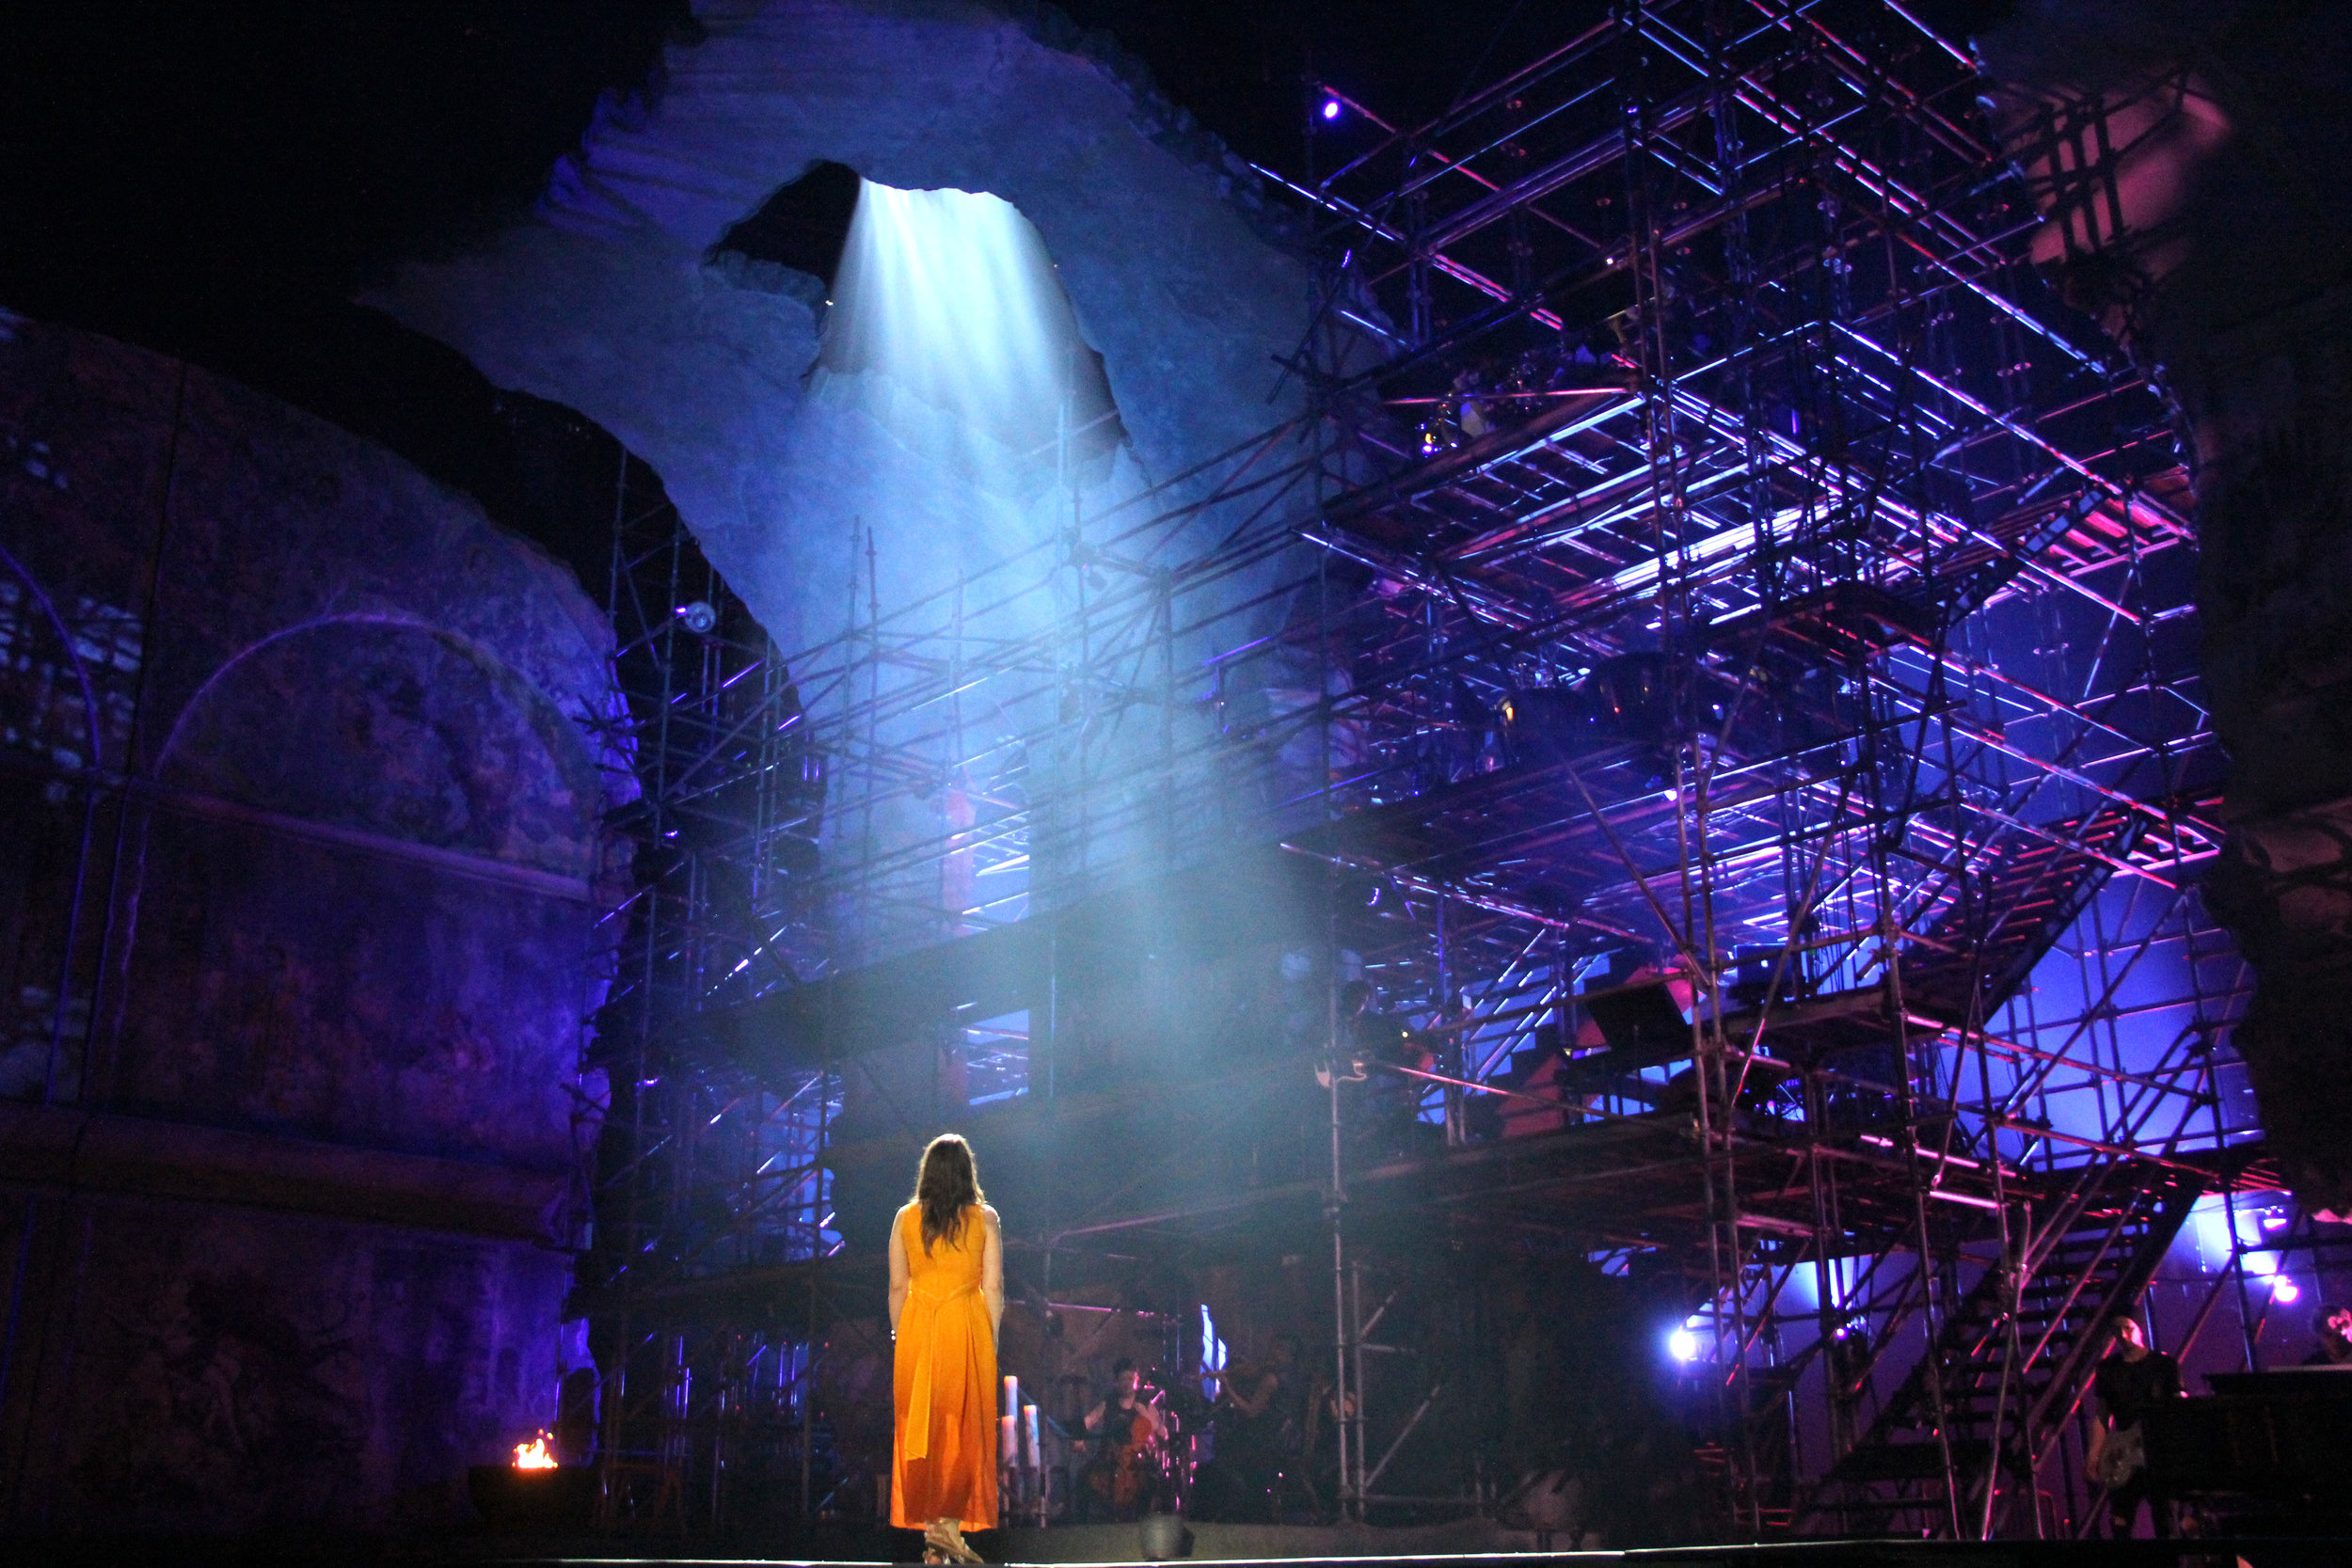 Jesus-Christ-Superstar-Act-04-I-Dont-Know-How-To-Love-Him-02.JPG